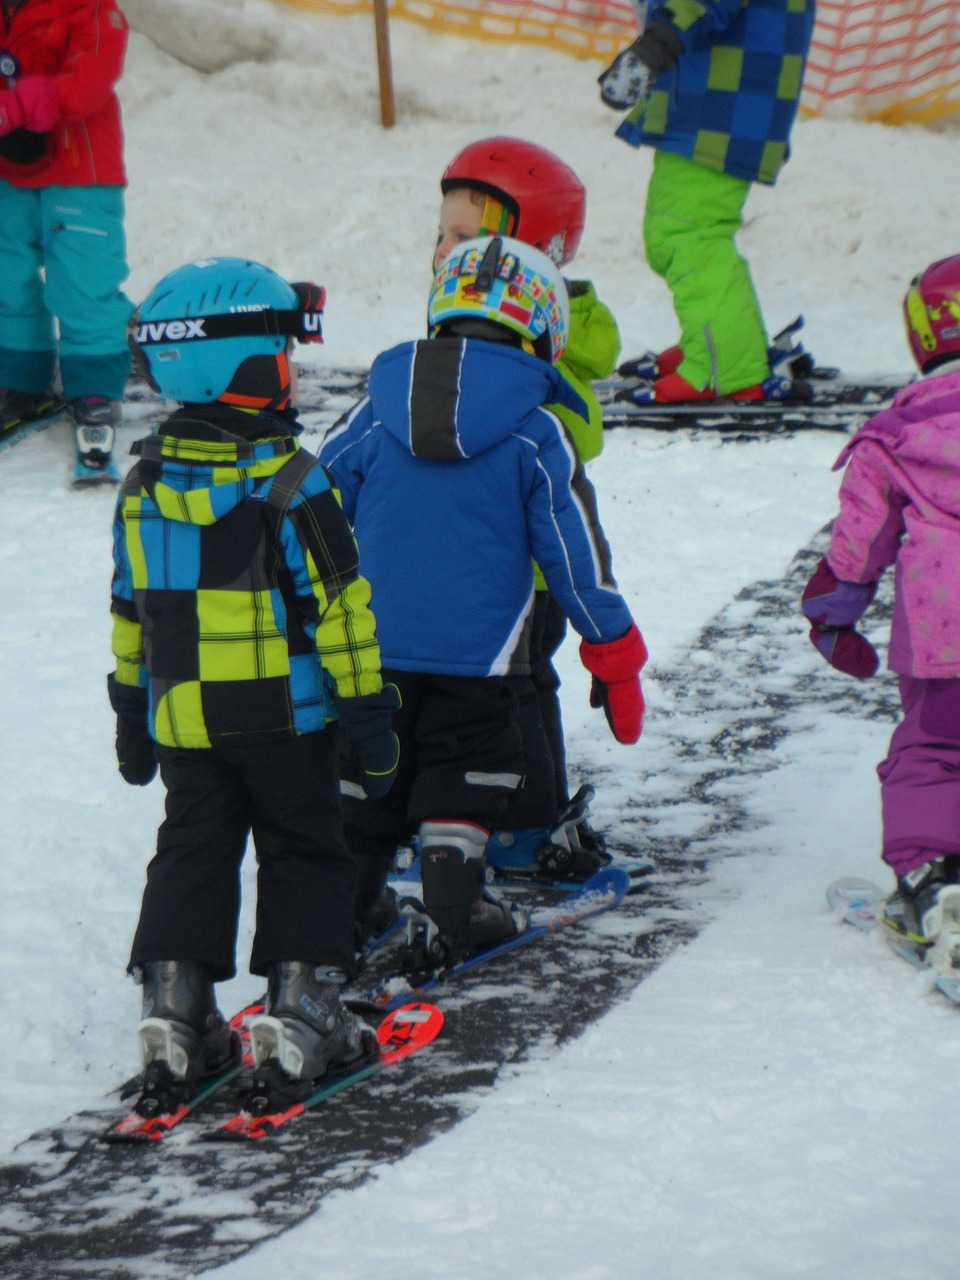 ski lessons dwarfs snow free photo